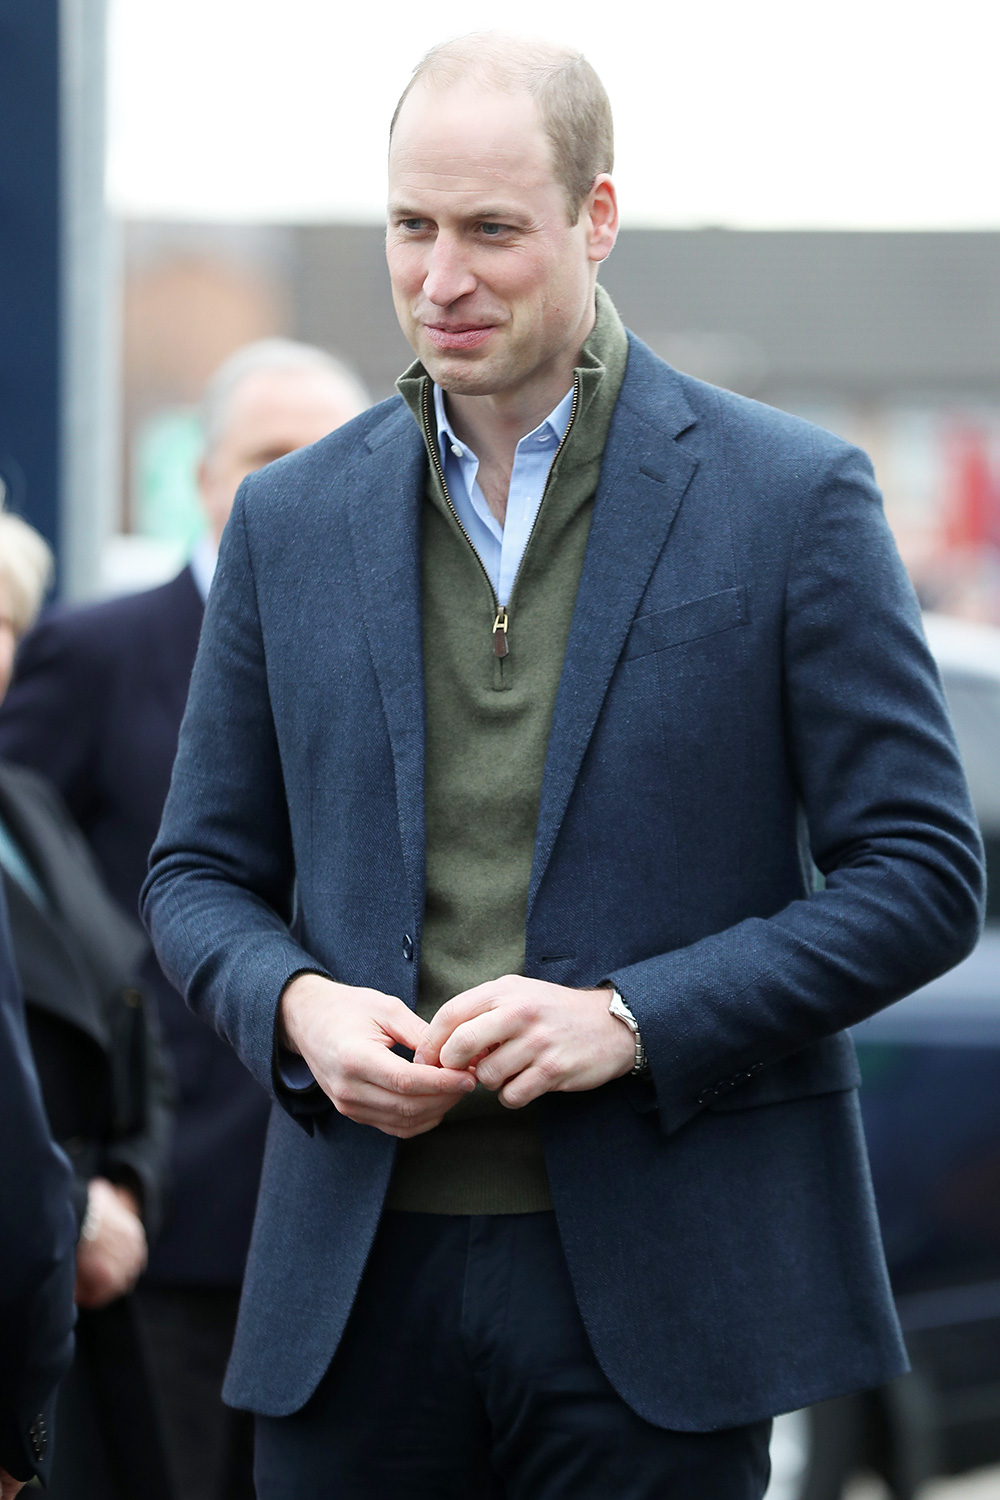 Prince William, Duke of Cambridge visits Everton Football Club's official charity Everton in the Community as part of the Heads Up campaign on January 30, 2020 in Liverpool, England